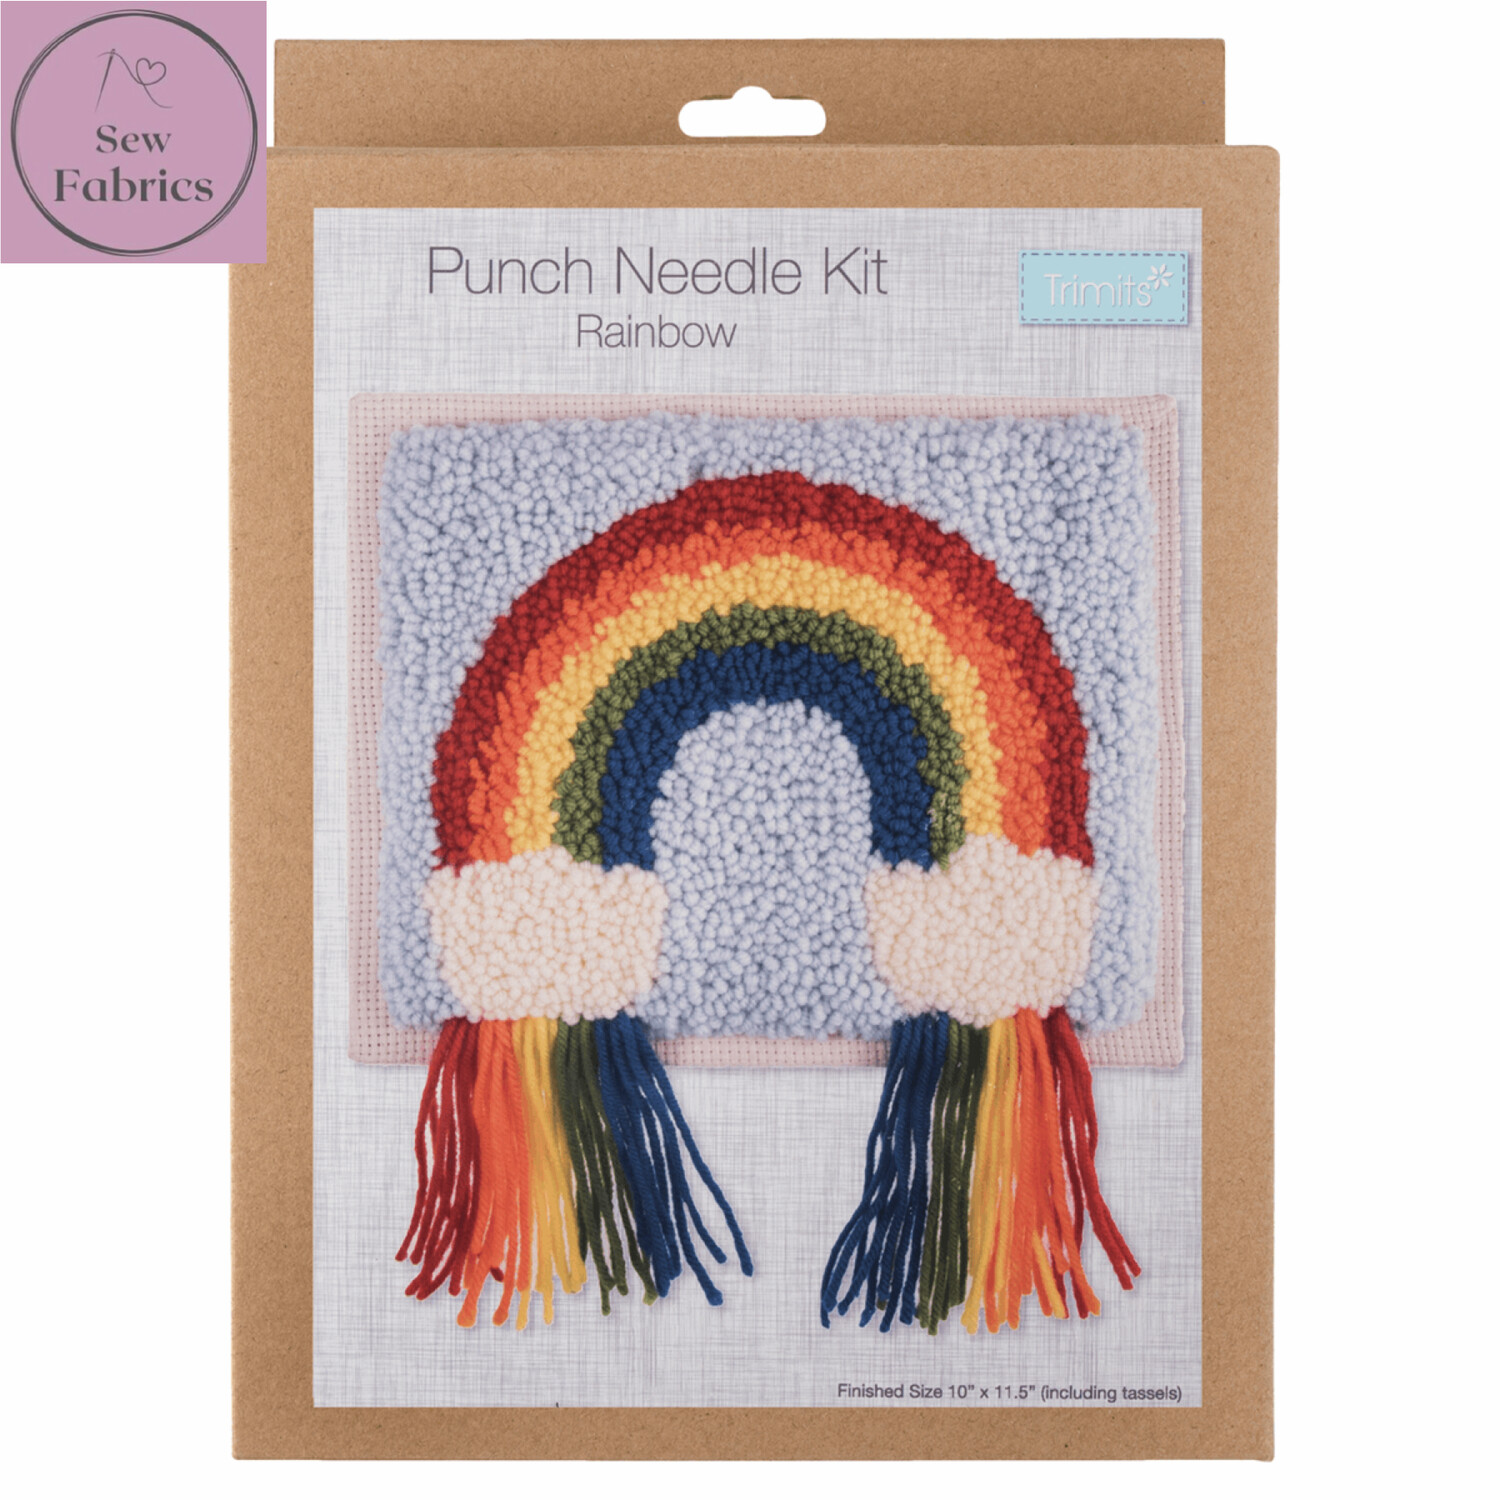 Trimits Rainbow Punch Needle Kit Craft Set